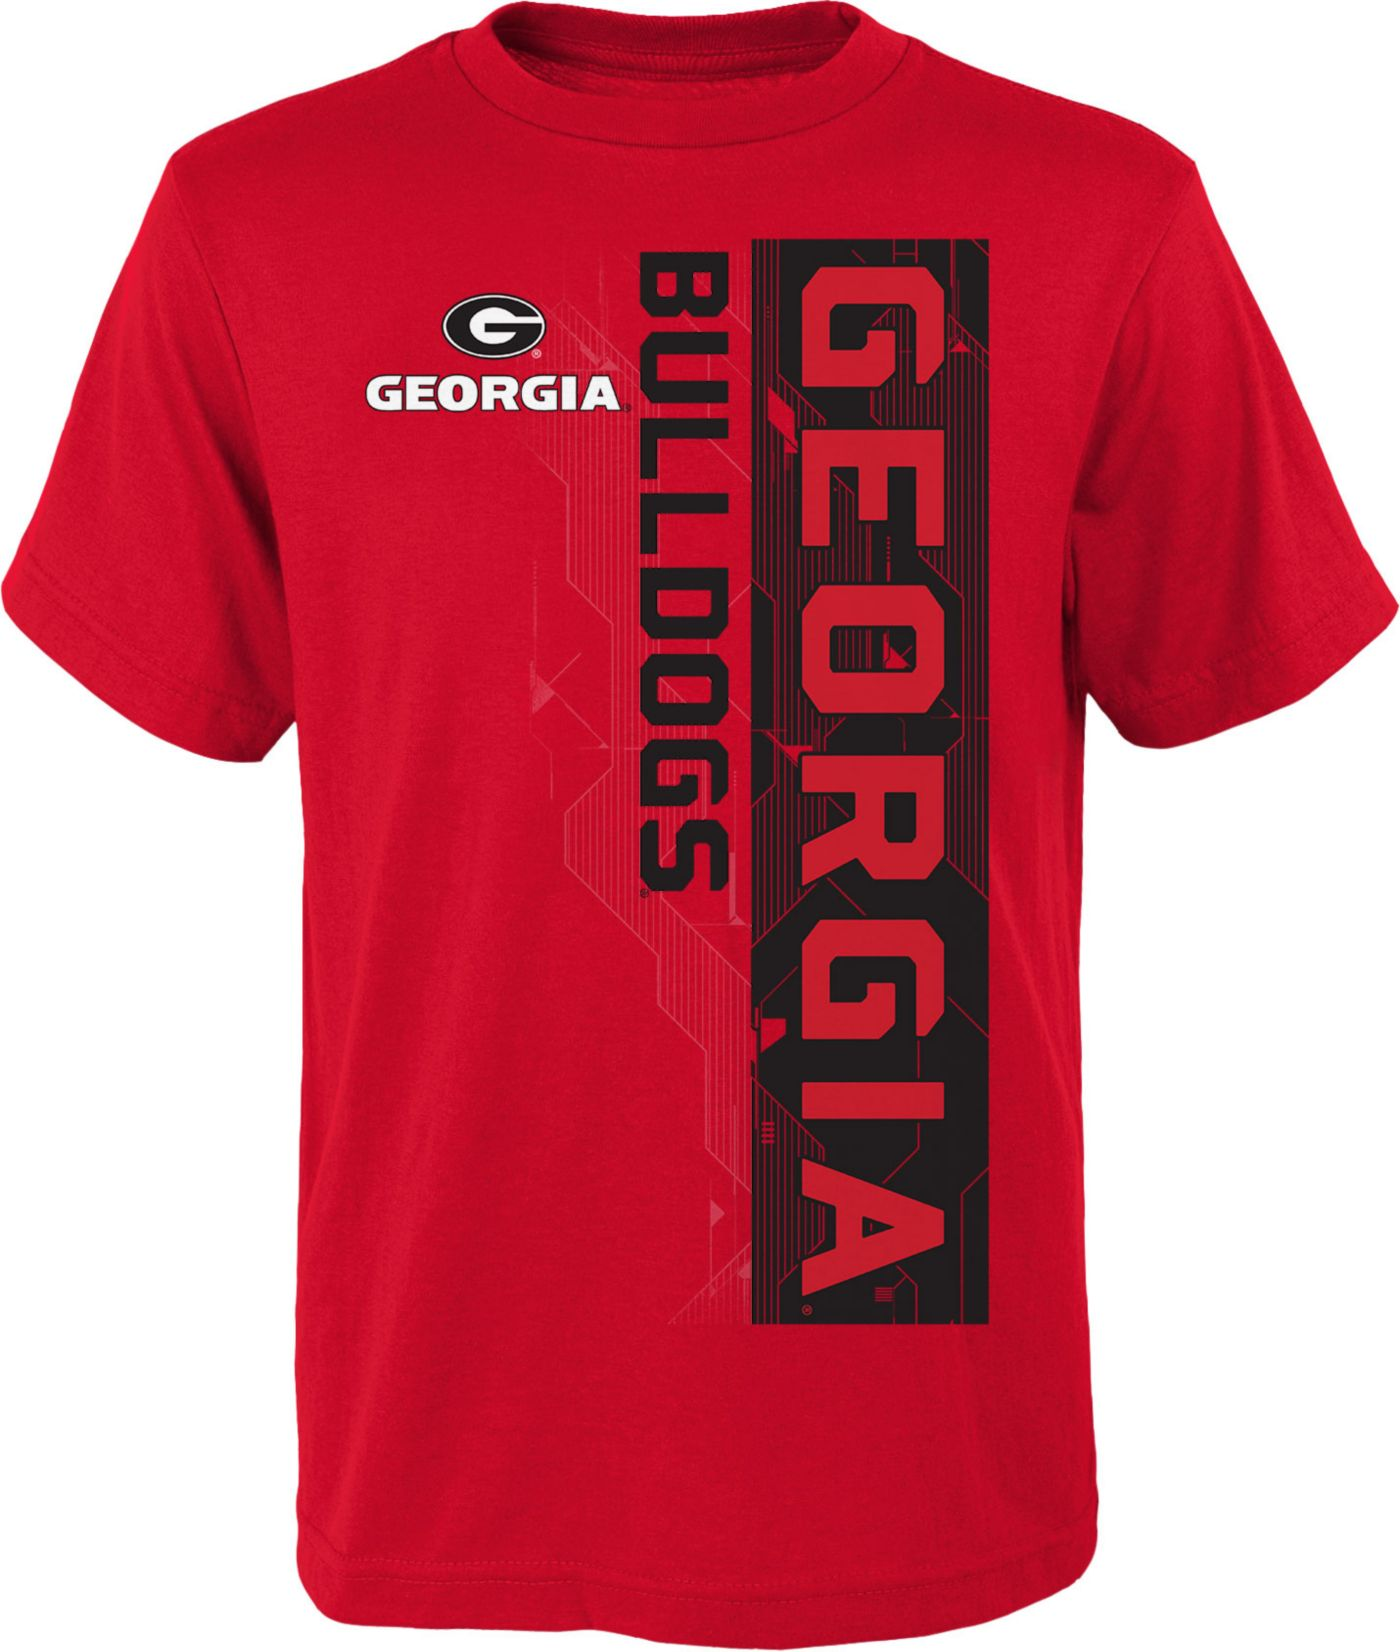 Gen2 Boys' Georgia Bulldogs Red Challenger T-Shirt